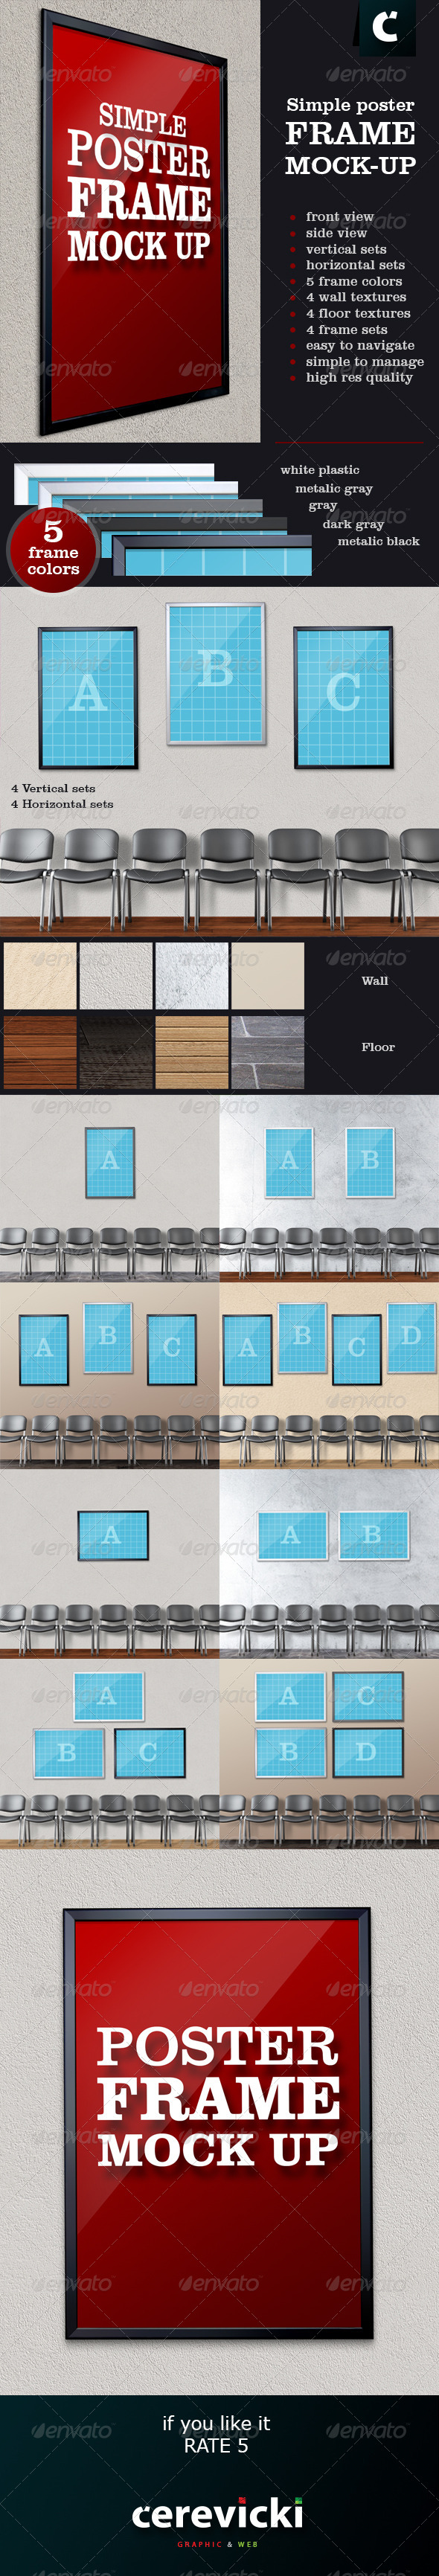 GraphicRiver Simple Poster Frame Mock-Up 7059662